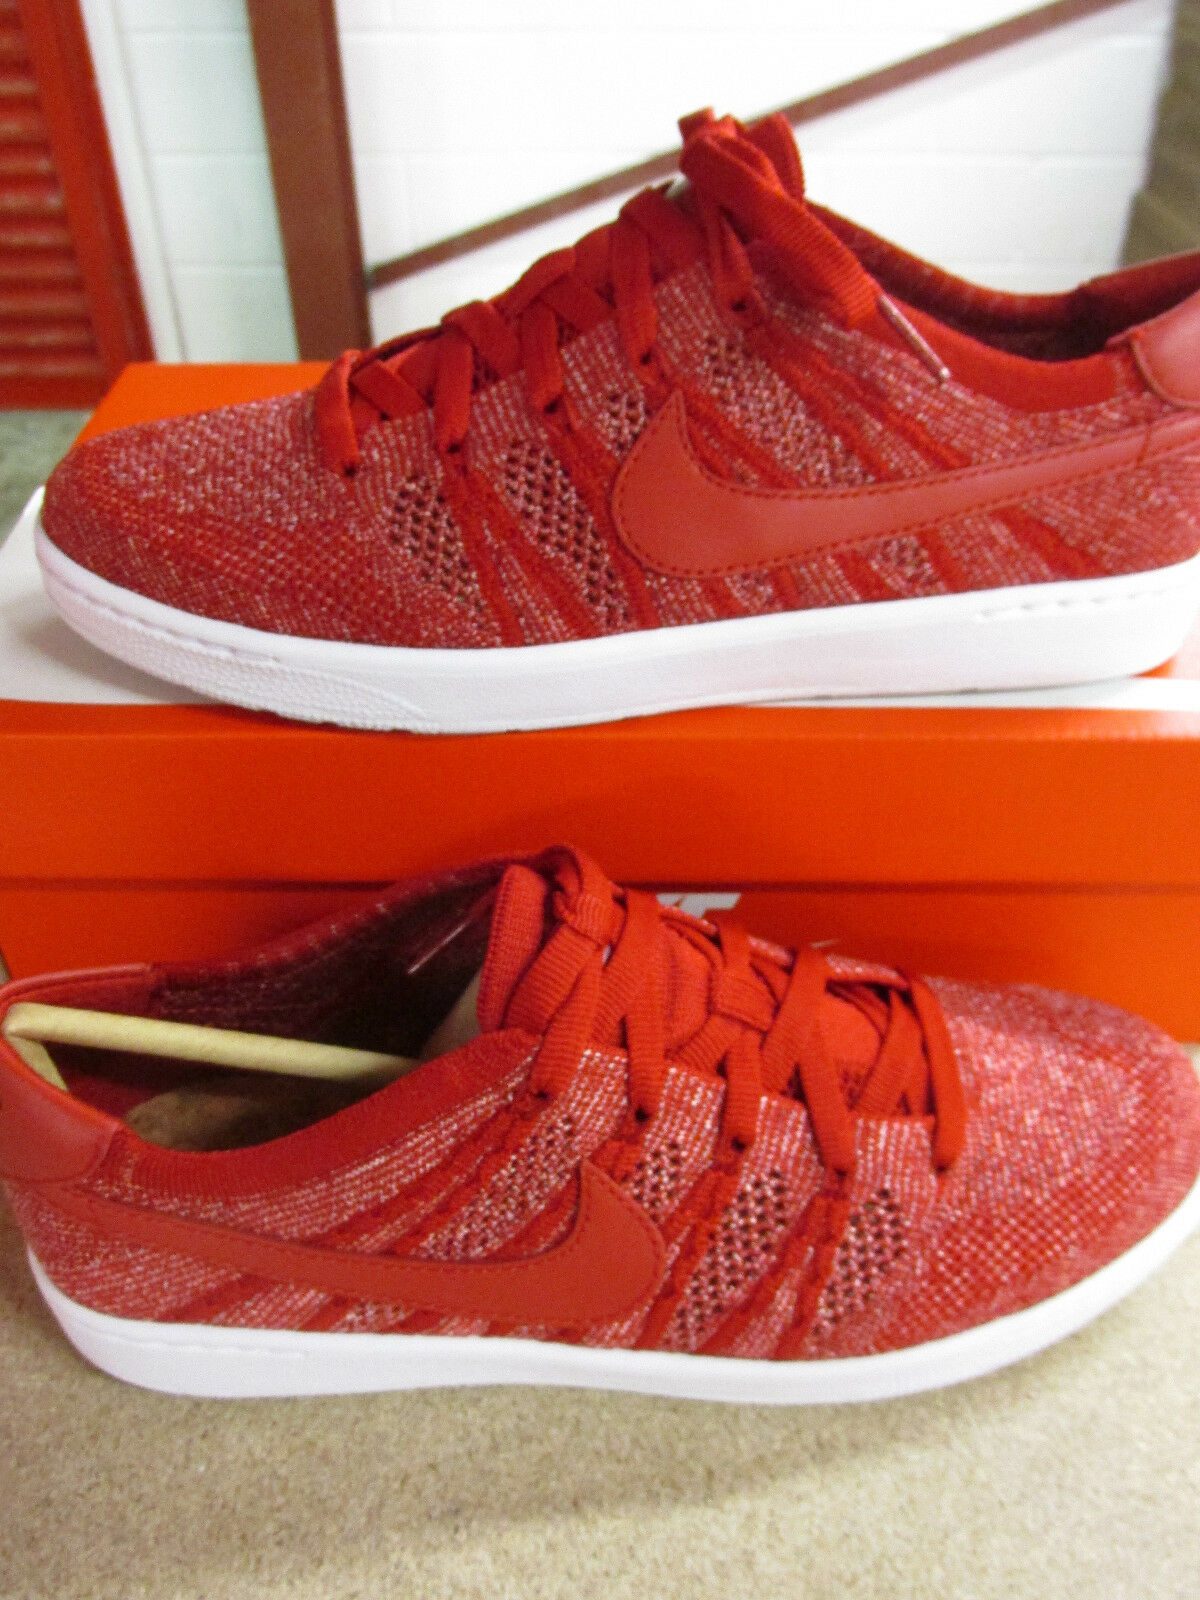 nike tennis classic ultra flyknit homme fonctionnement  fonctionnement homme trainers 830704 600 Baskets Chaussure c3494e